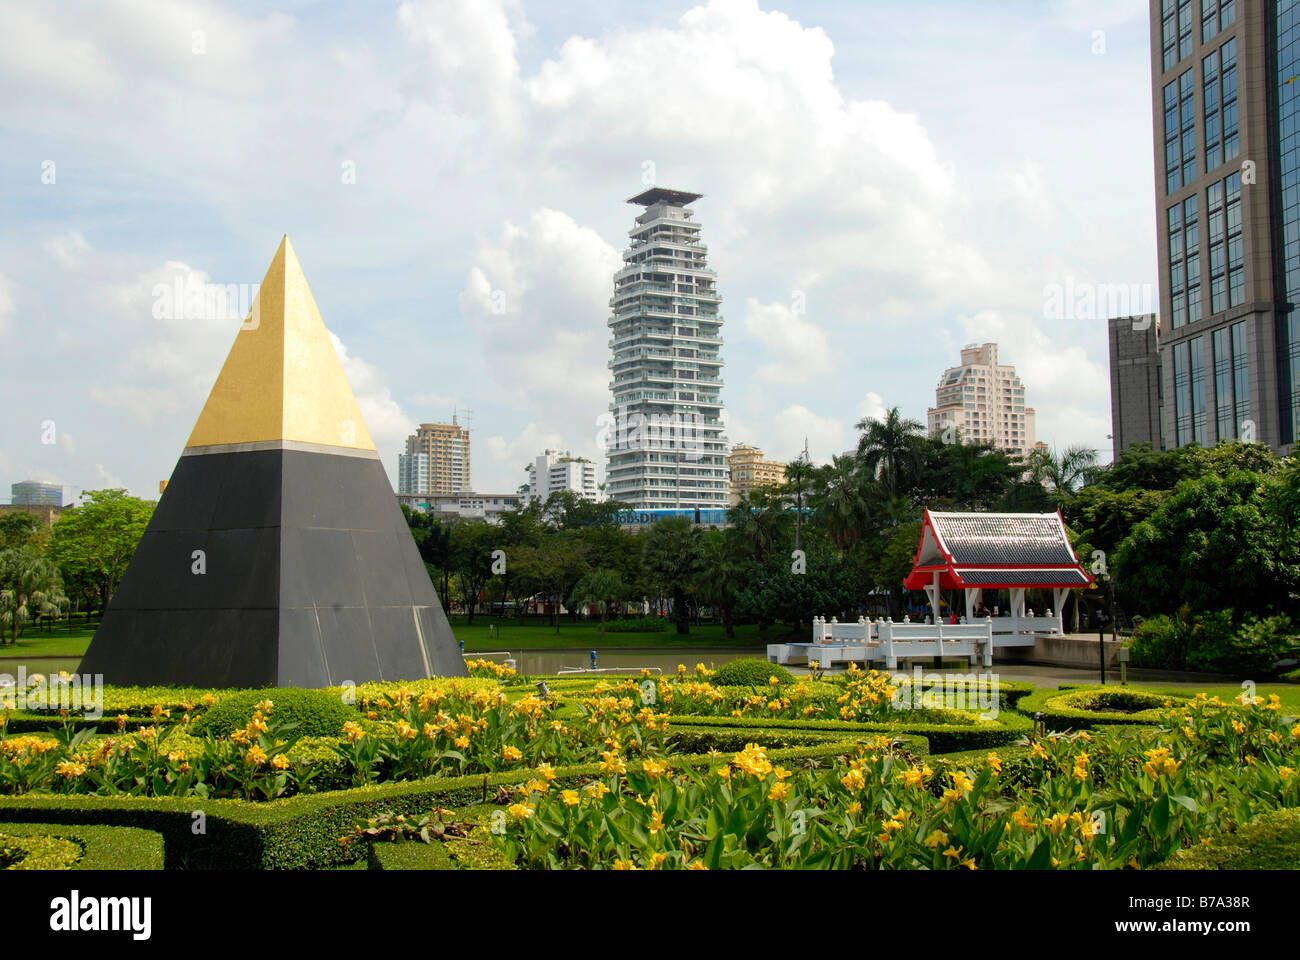 Pyramid with a golden peak in front of a temple and modern multistory buildings, Queens Park, Bangkok, Thailand, - Stock Image